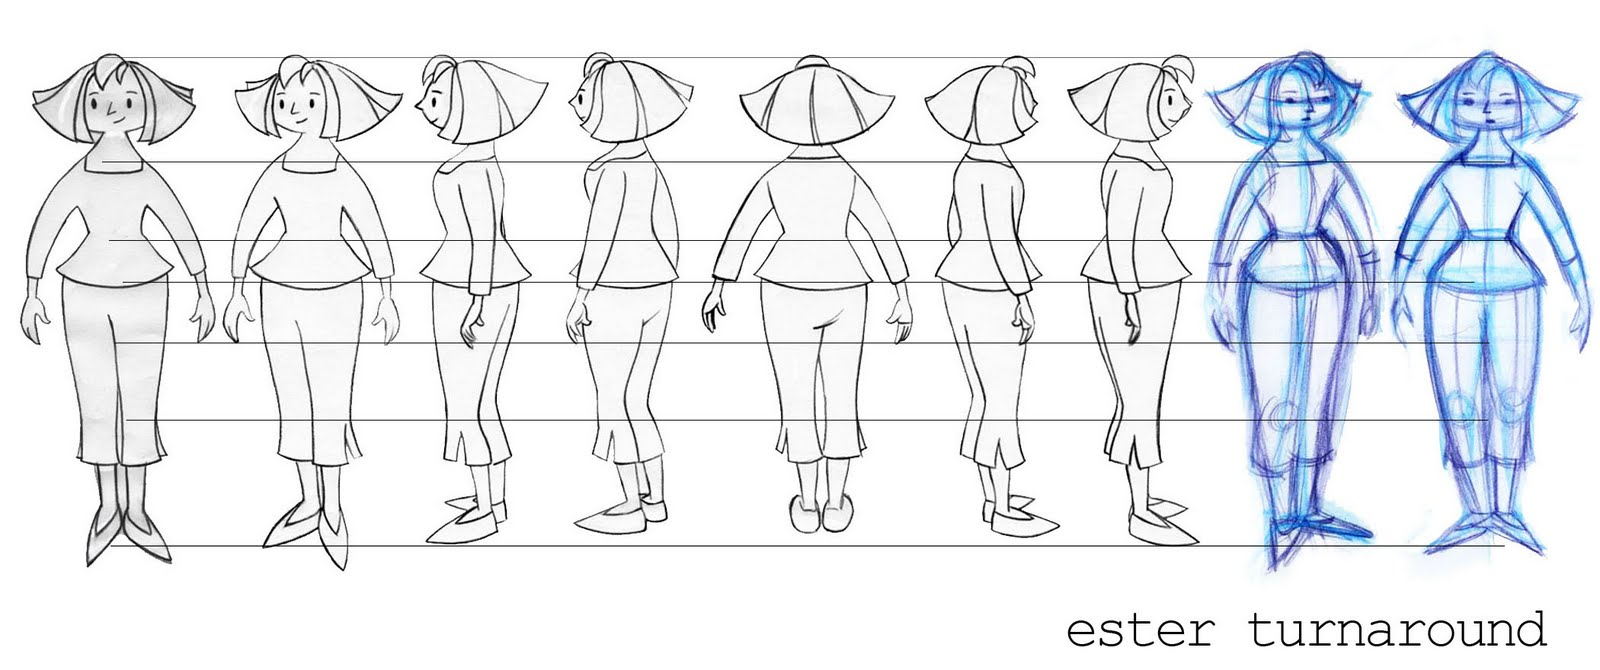 Cartoon Character Design Sheet : Cartoon character turnaround sheets sex porn images